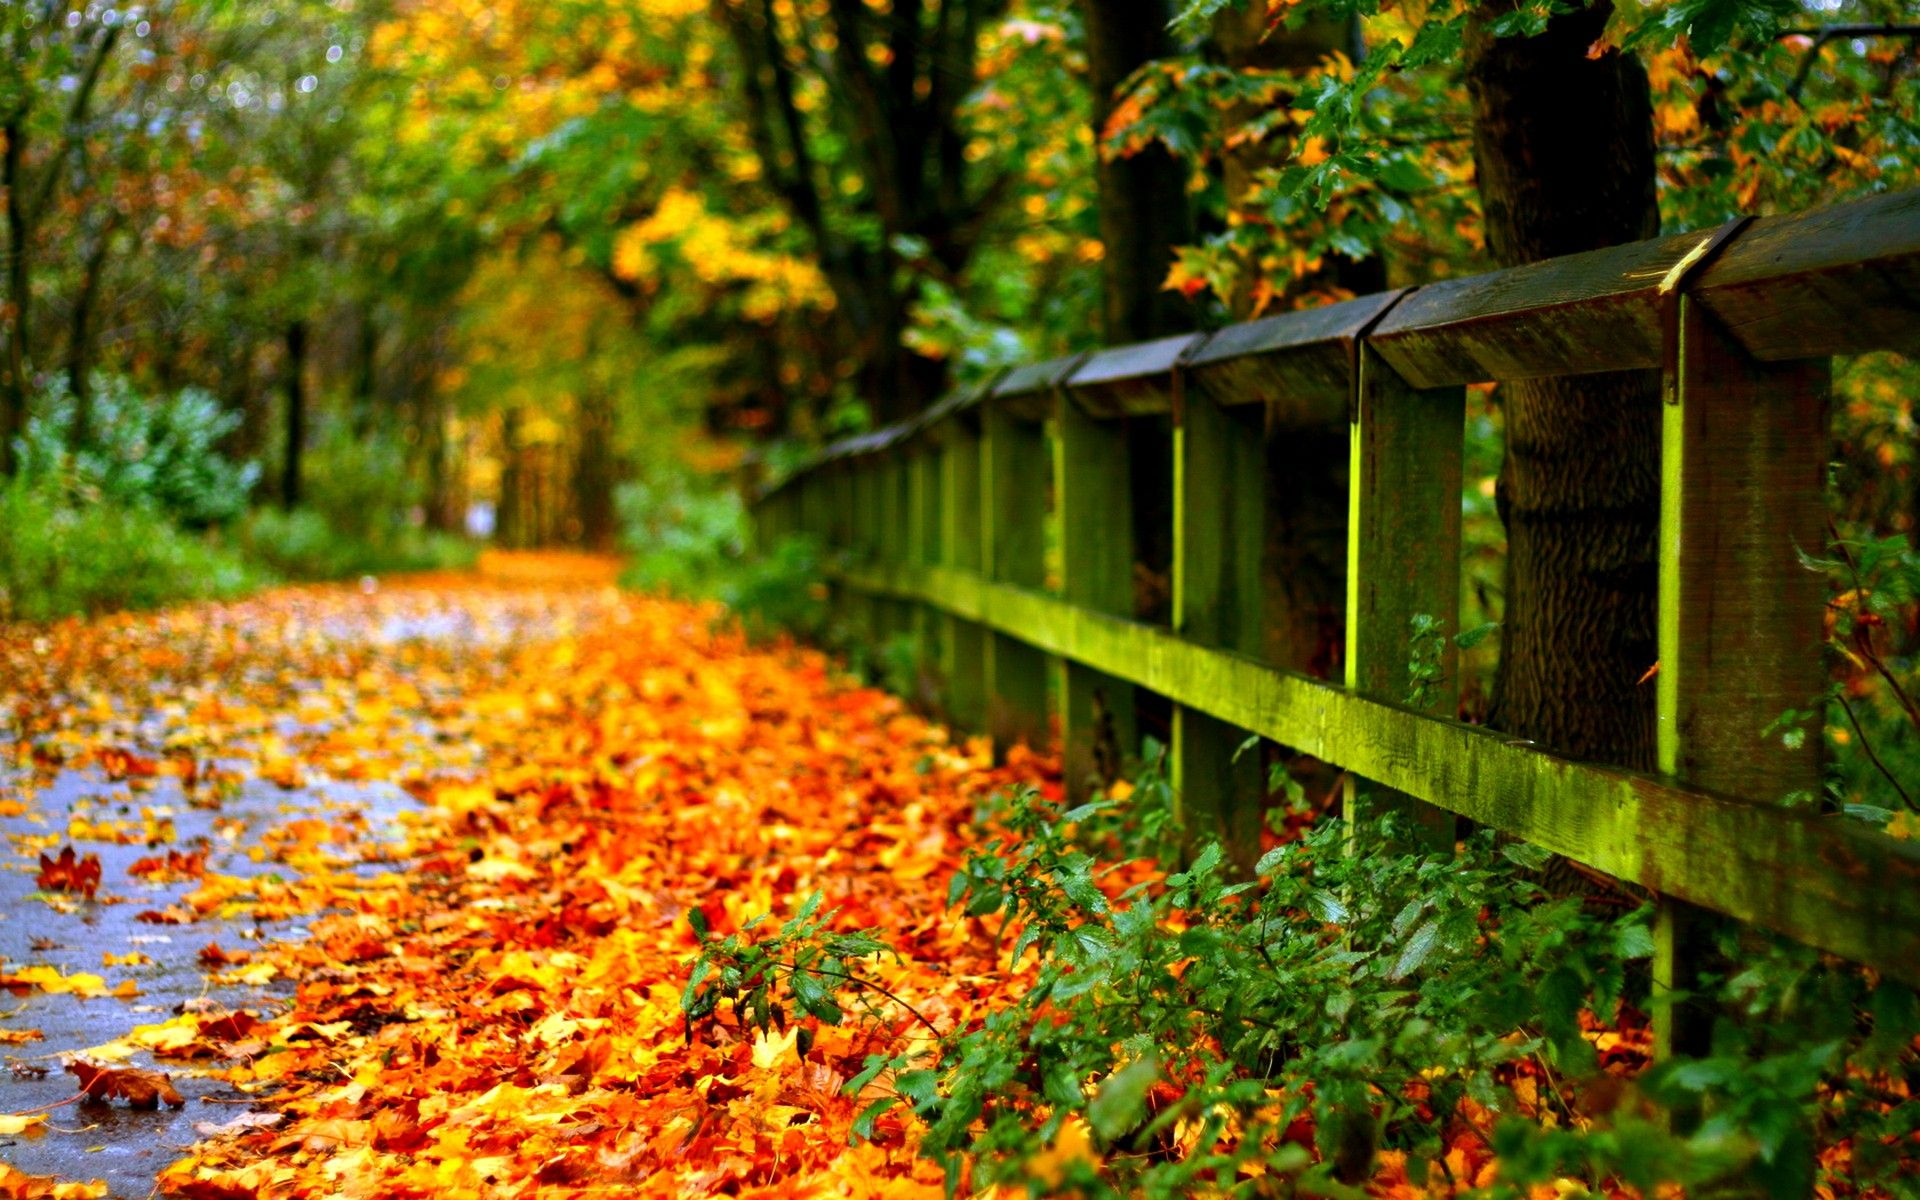 Download Large Size Wallpapers For Laptop Gallery Autumn Leaves Wallpaper Fall Pictures Fall Wallpaper